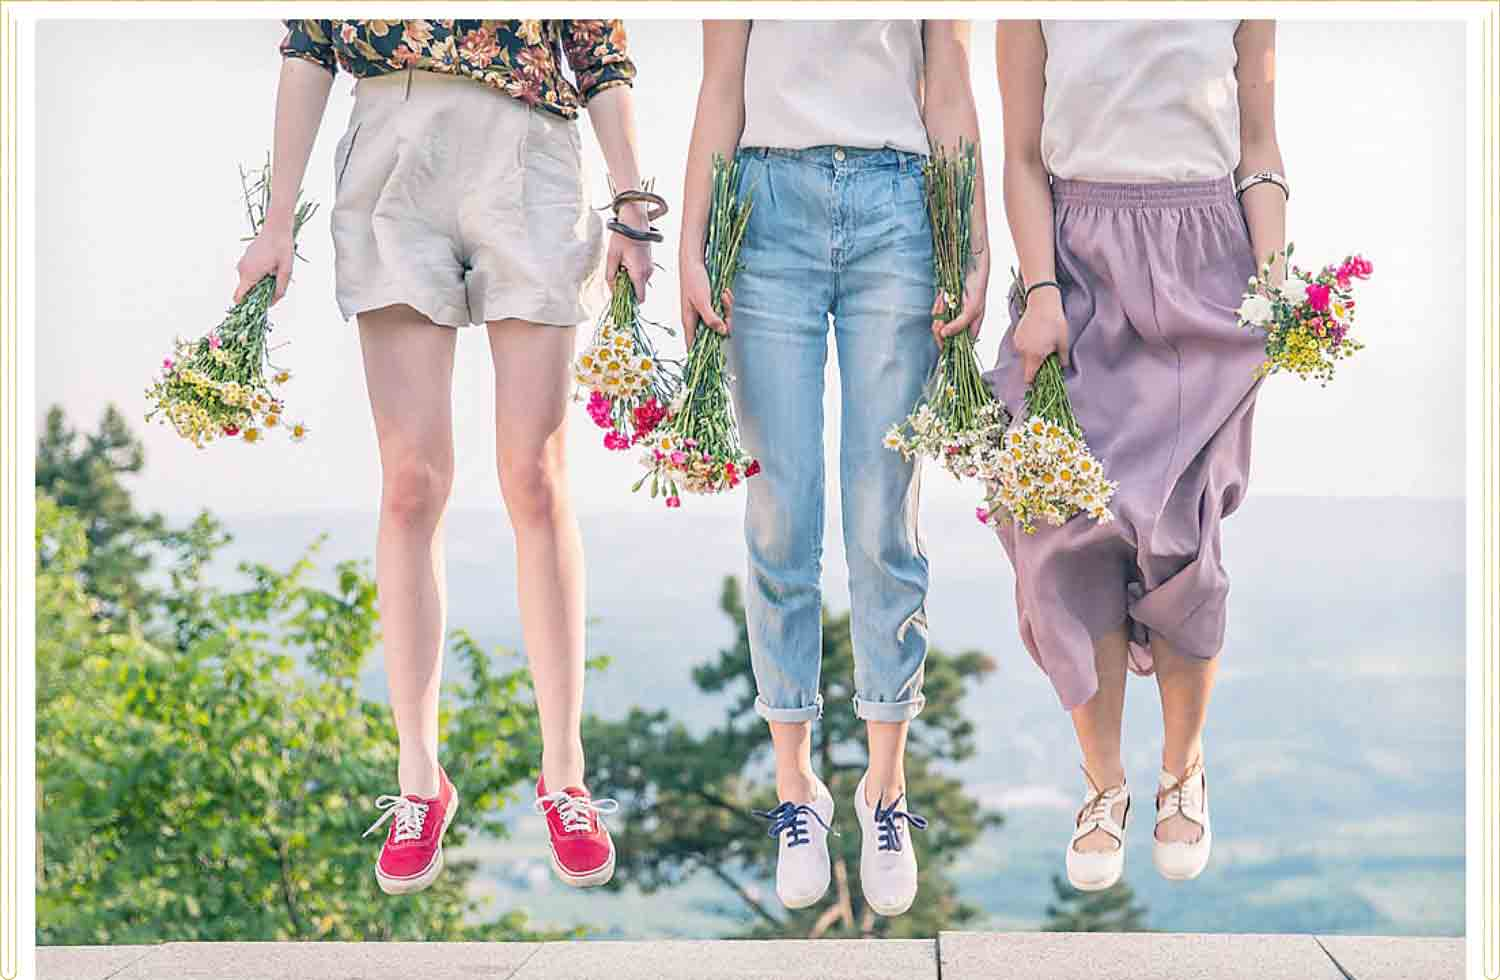 three girls holding flowers while jumping